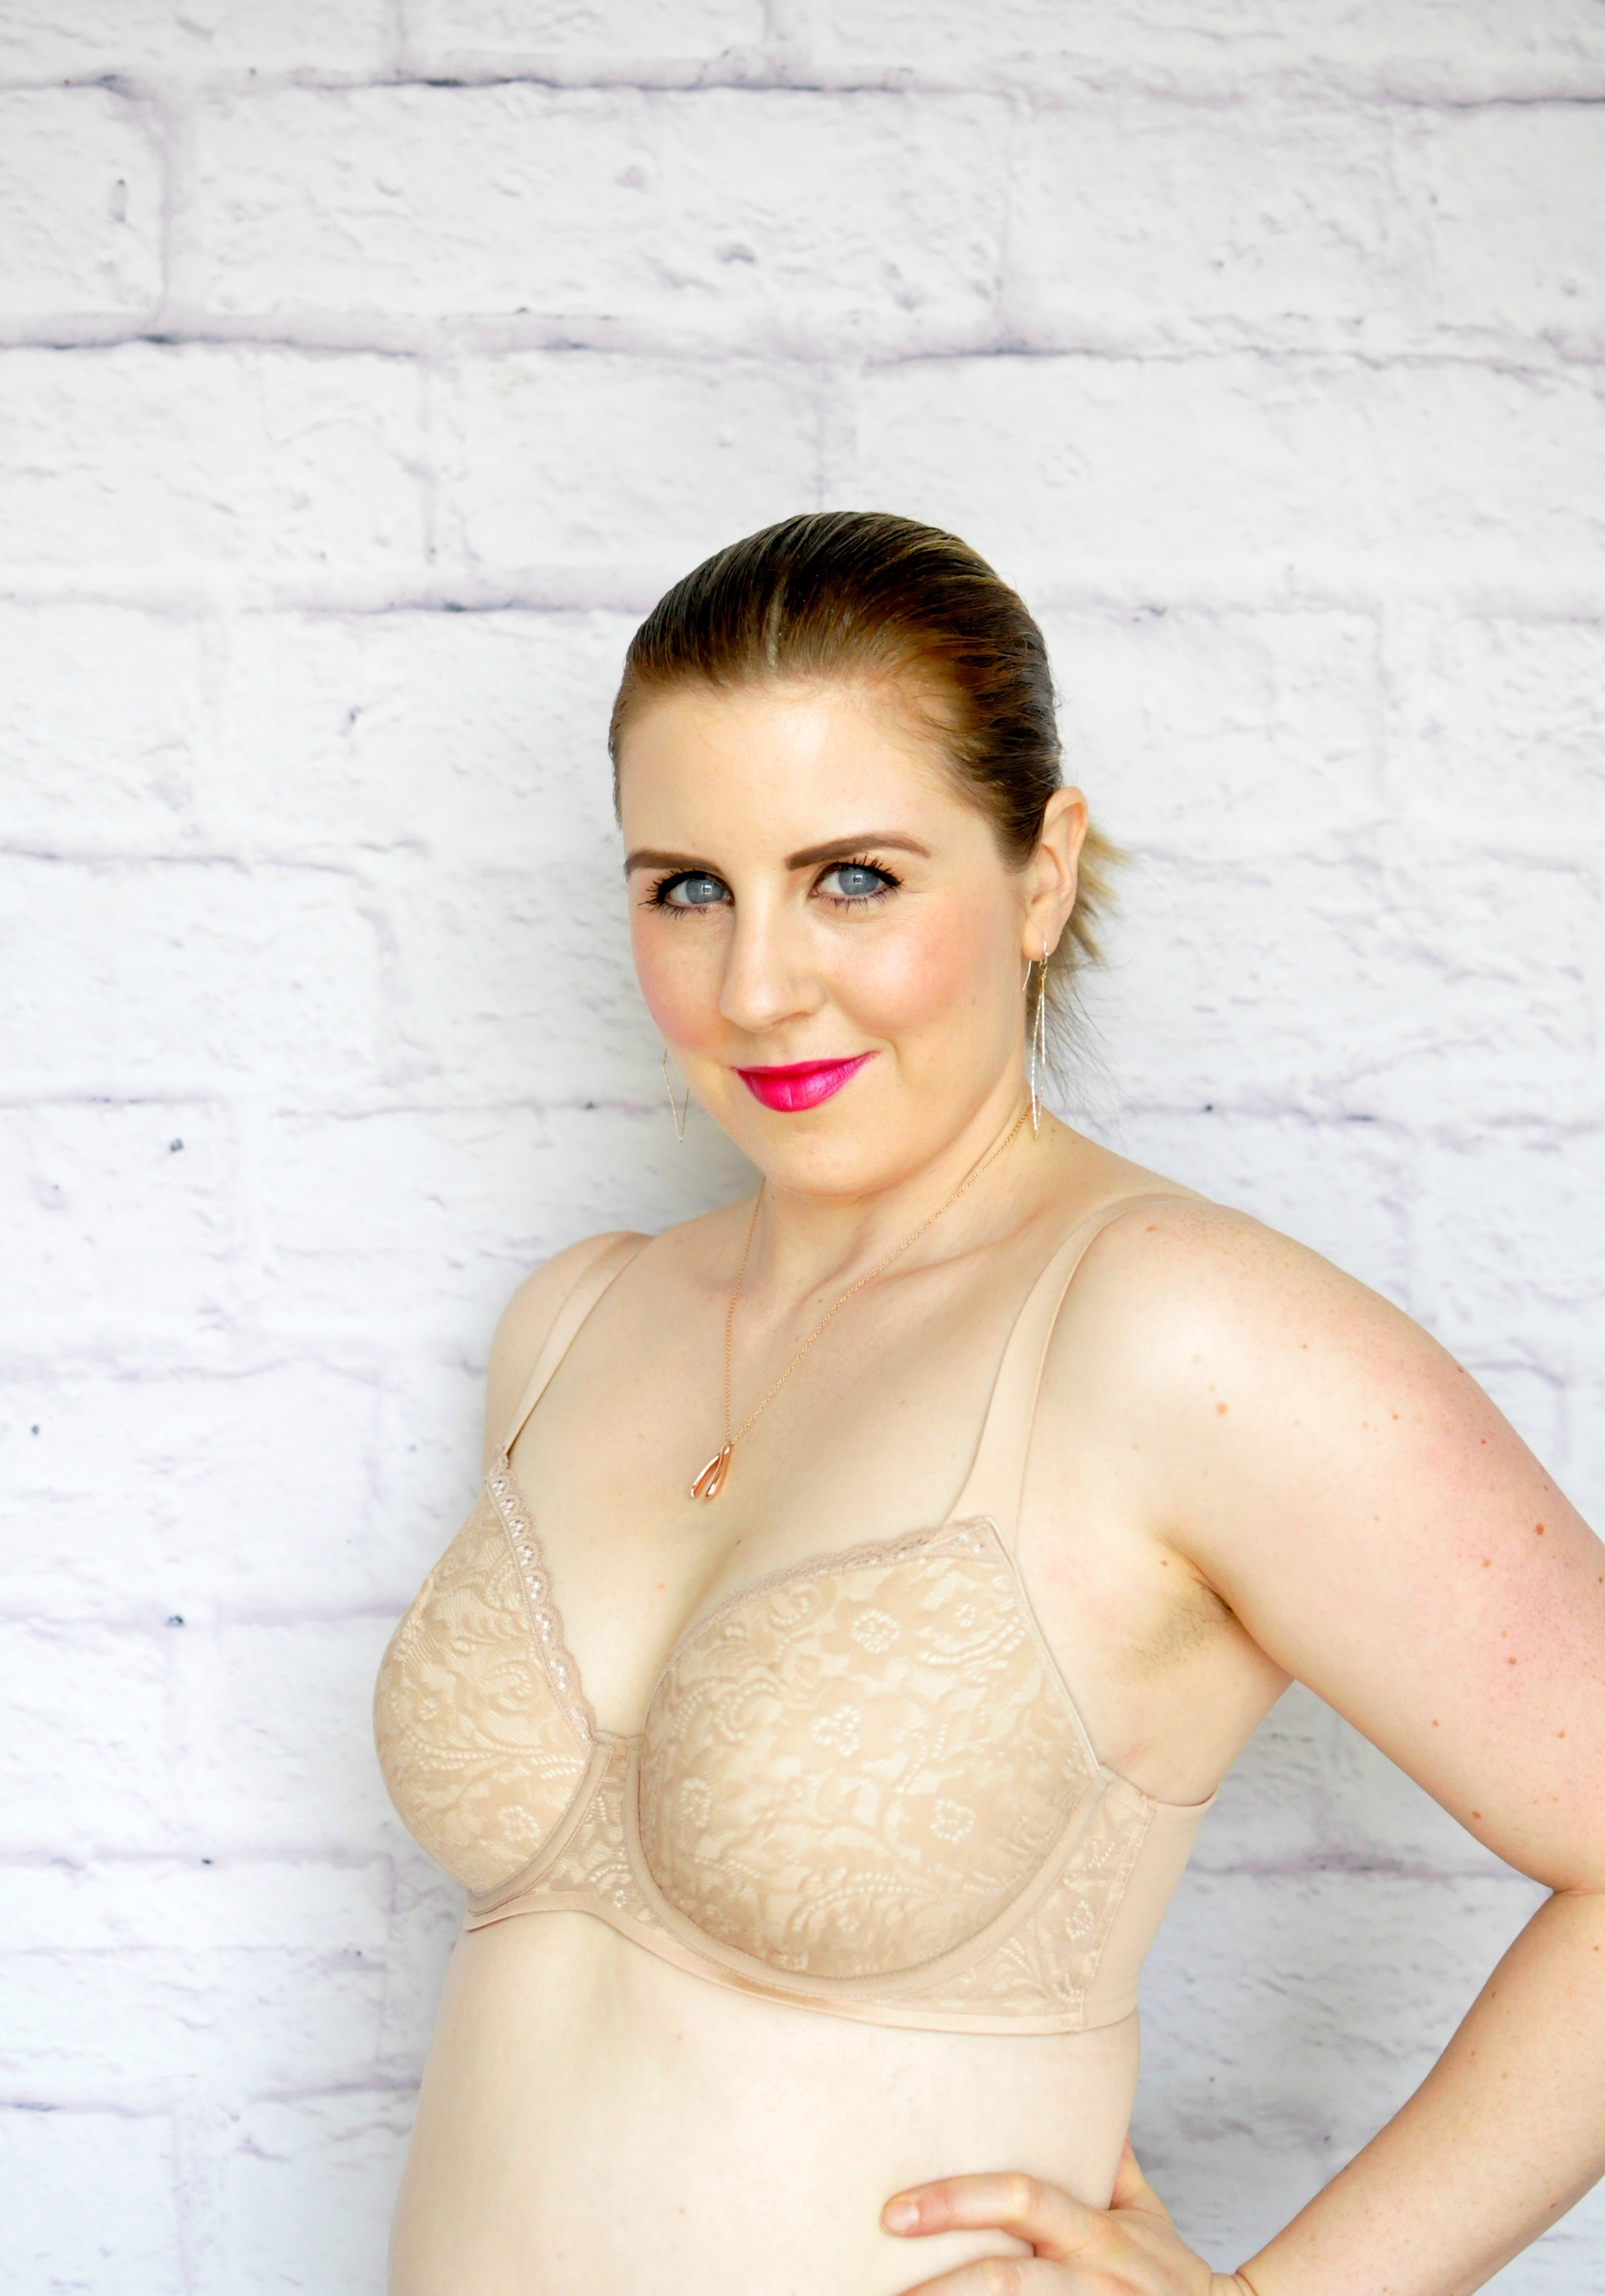 New Soma Enticing Lift Bra Review Bra Fittings By Court